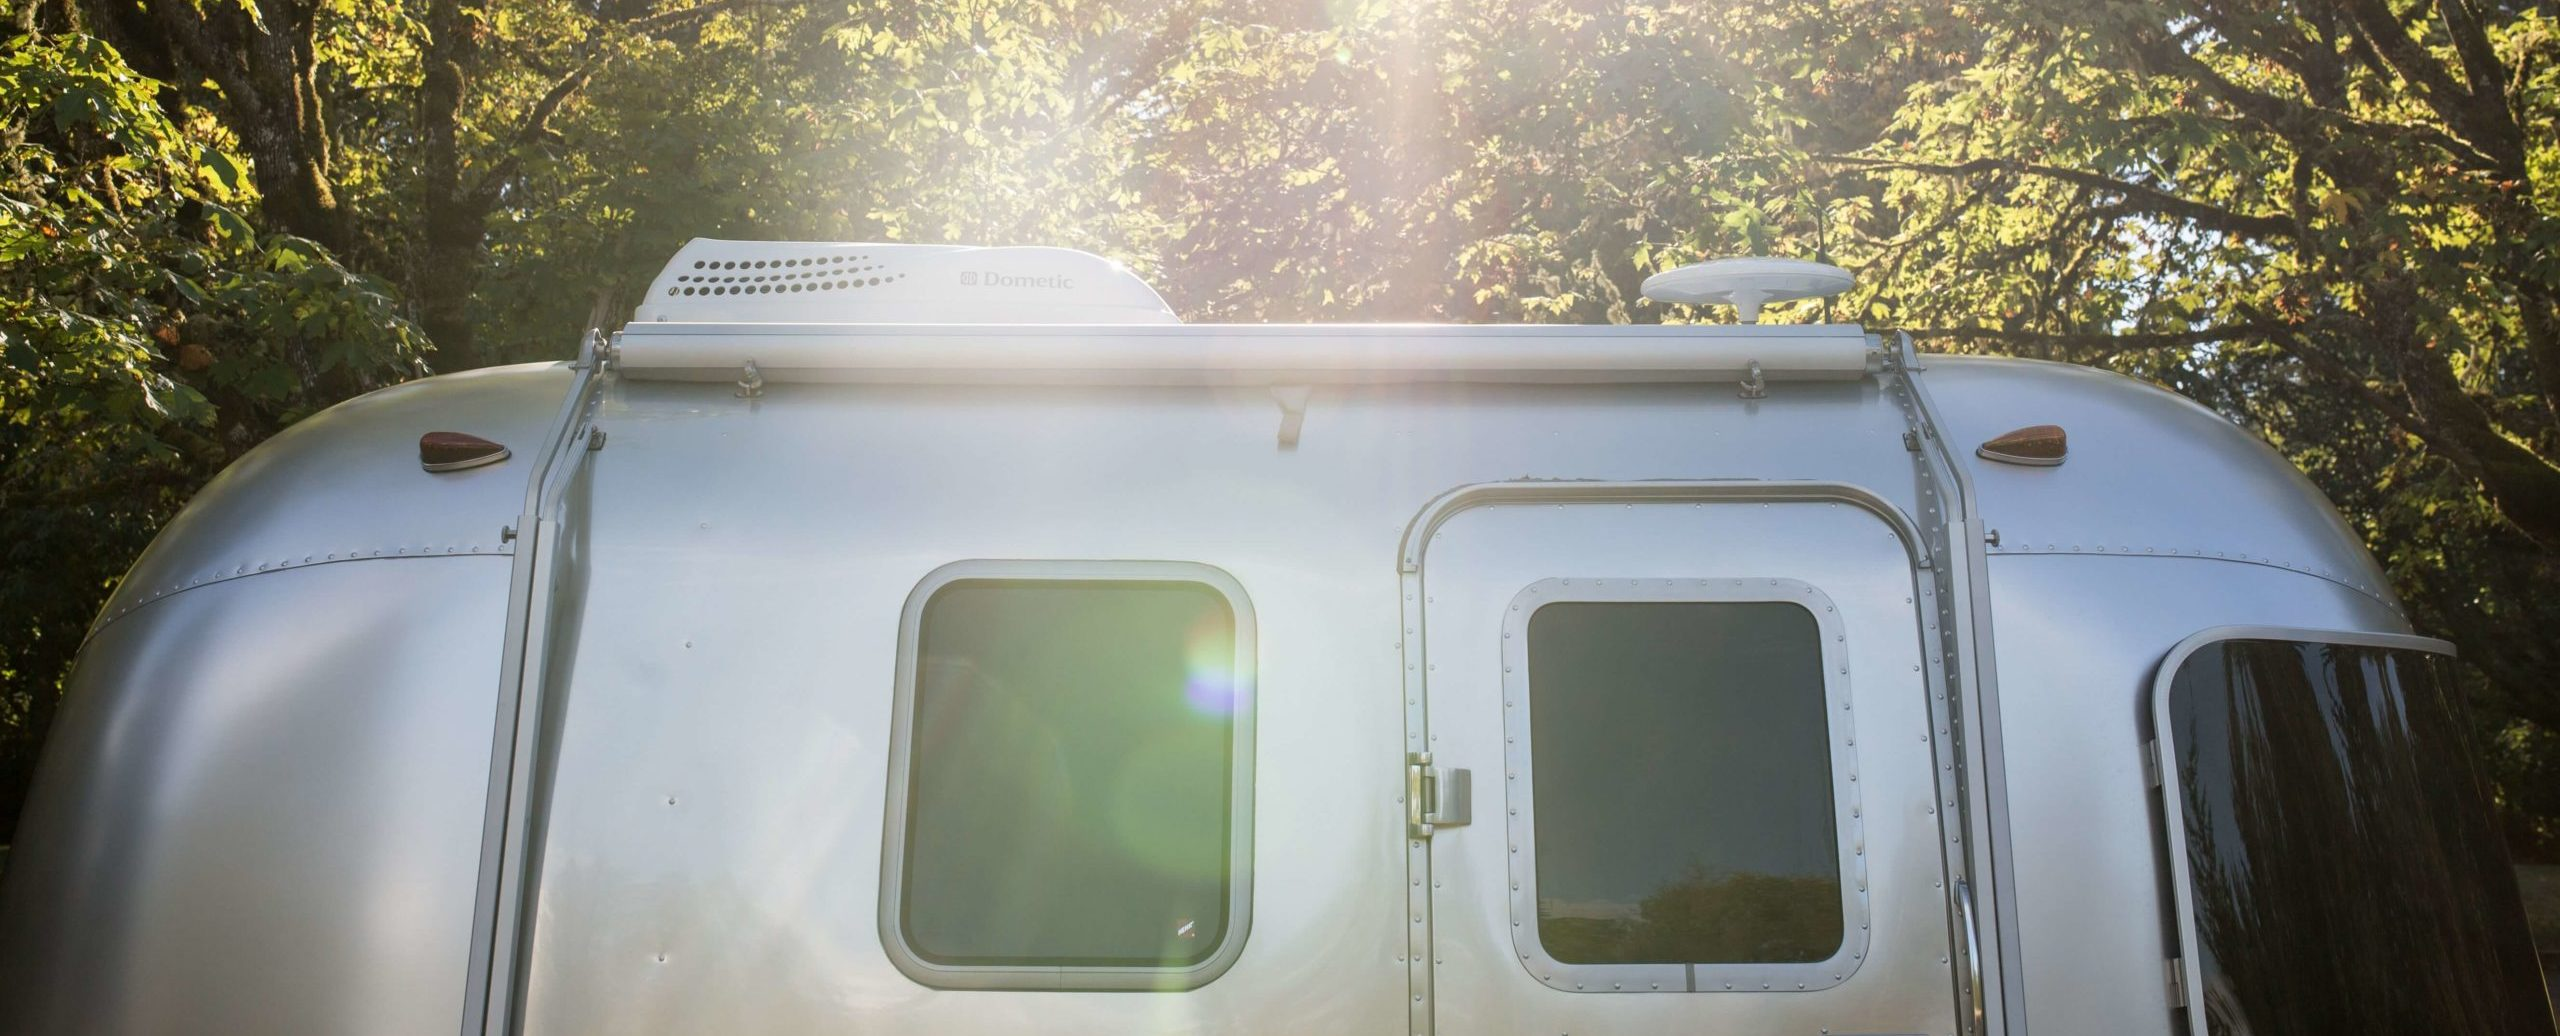 Do Small Campers Still Have Bathrooms? These 10 Do.